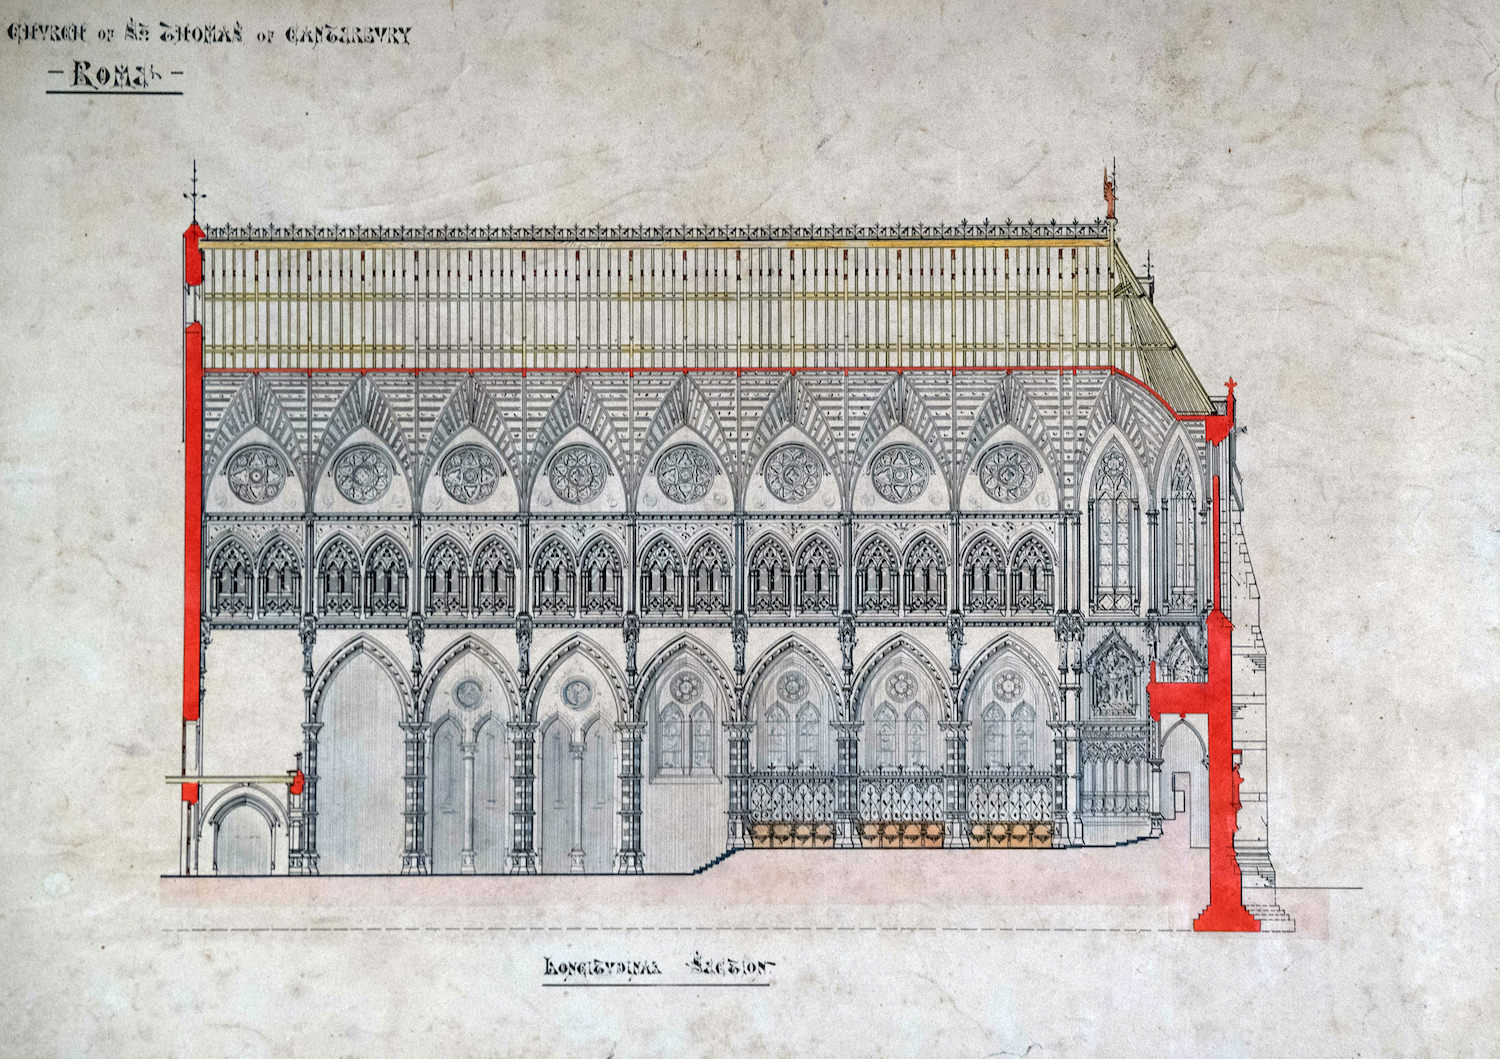 Unexecuted designs by Edward Welby Pugin for the new Church of St Thomas of Canterbury, Rome, 1868.